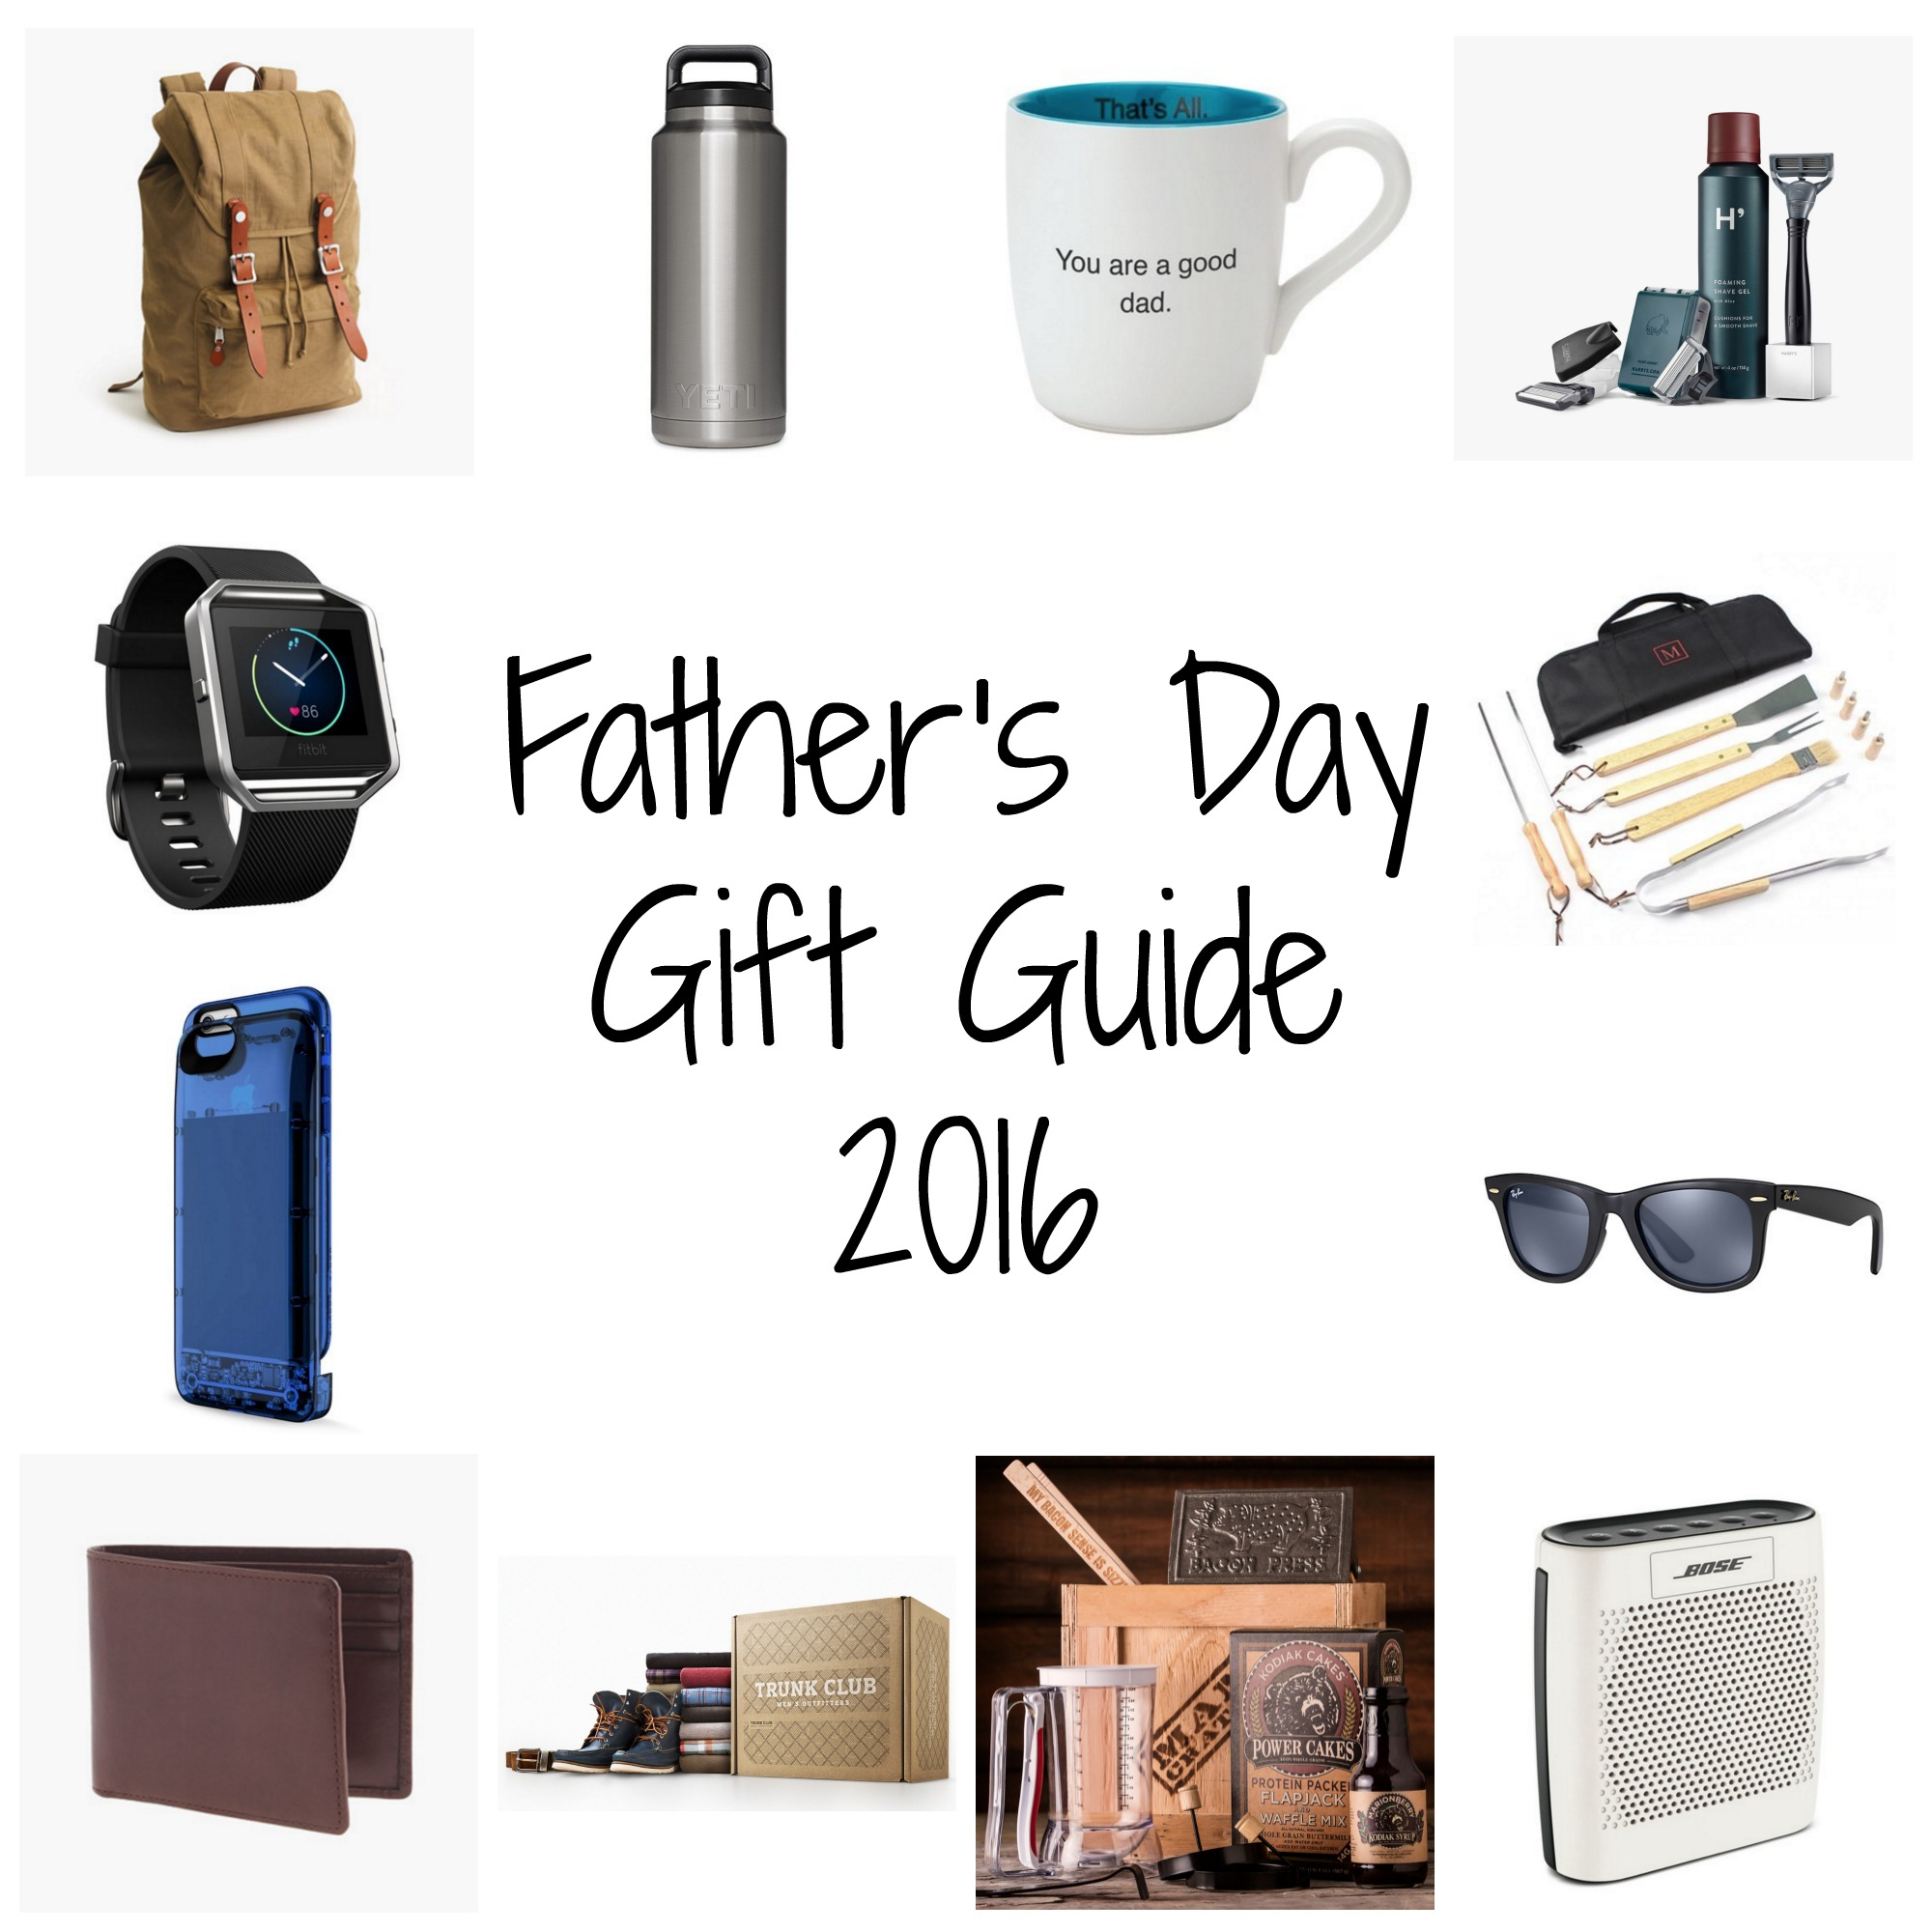 Father's Day Gift Guide 2016 – HinsonGayle Fine Pearl Jewelry